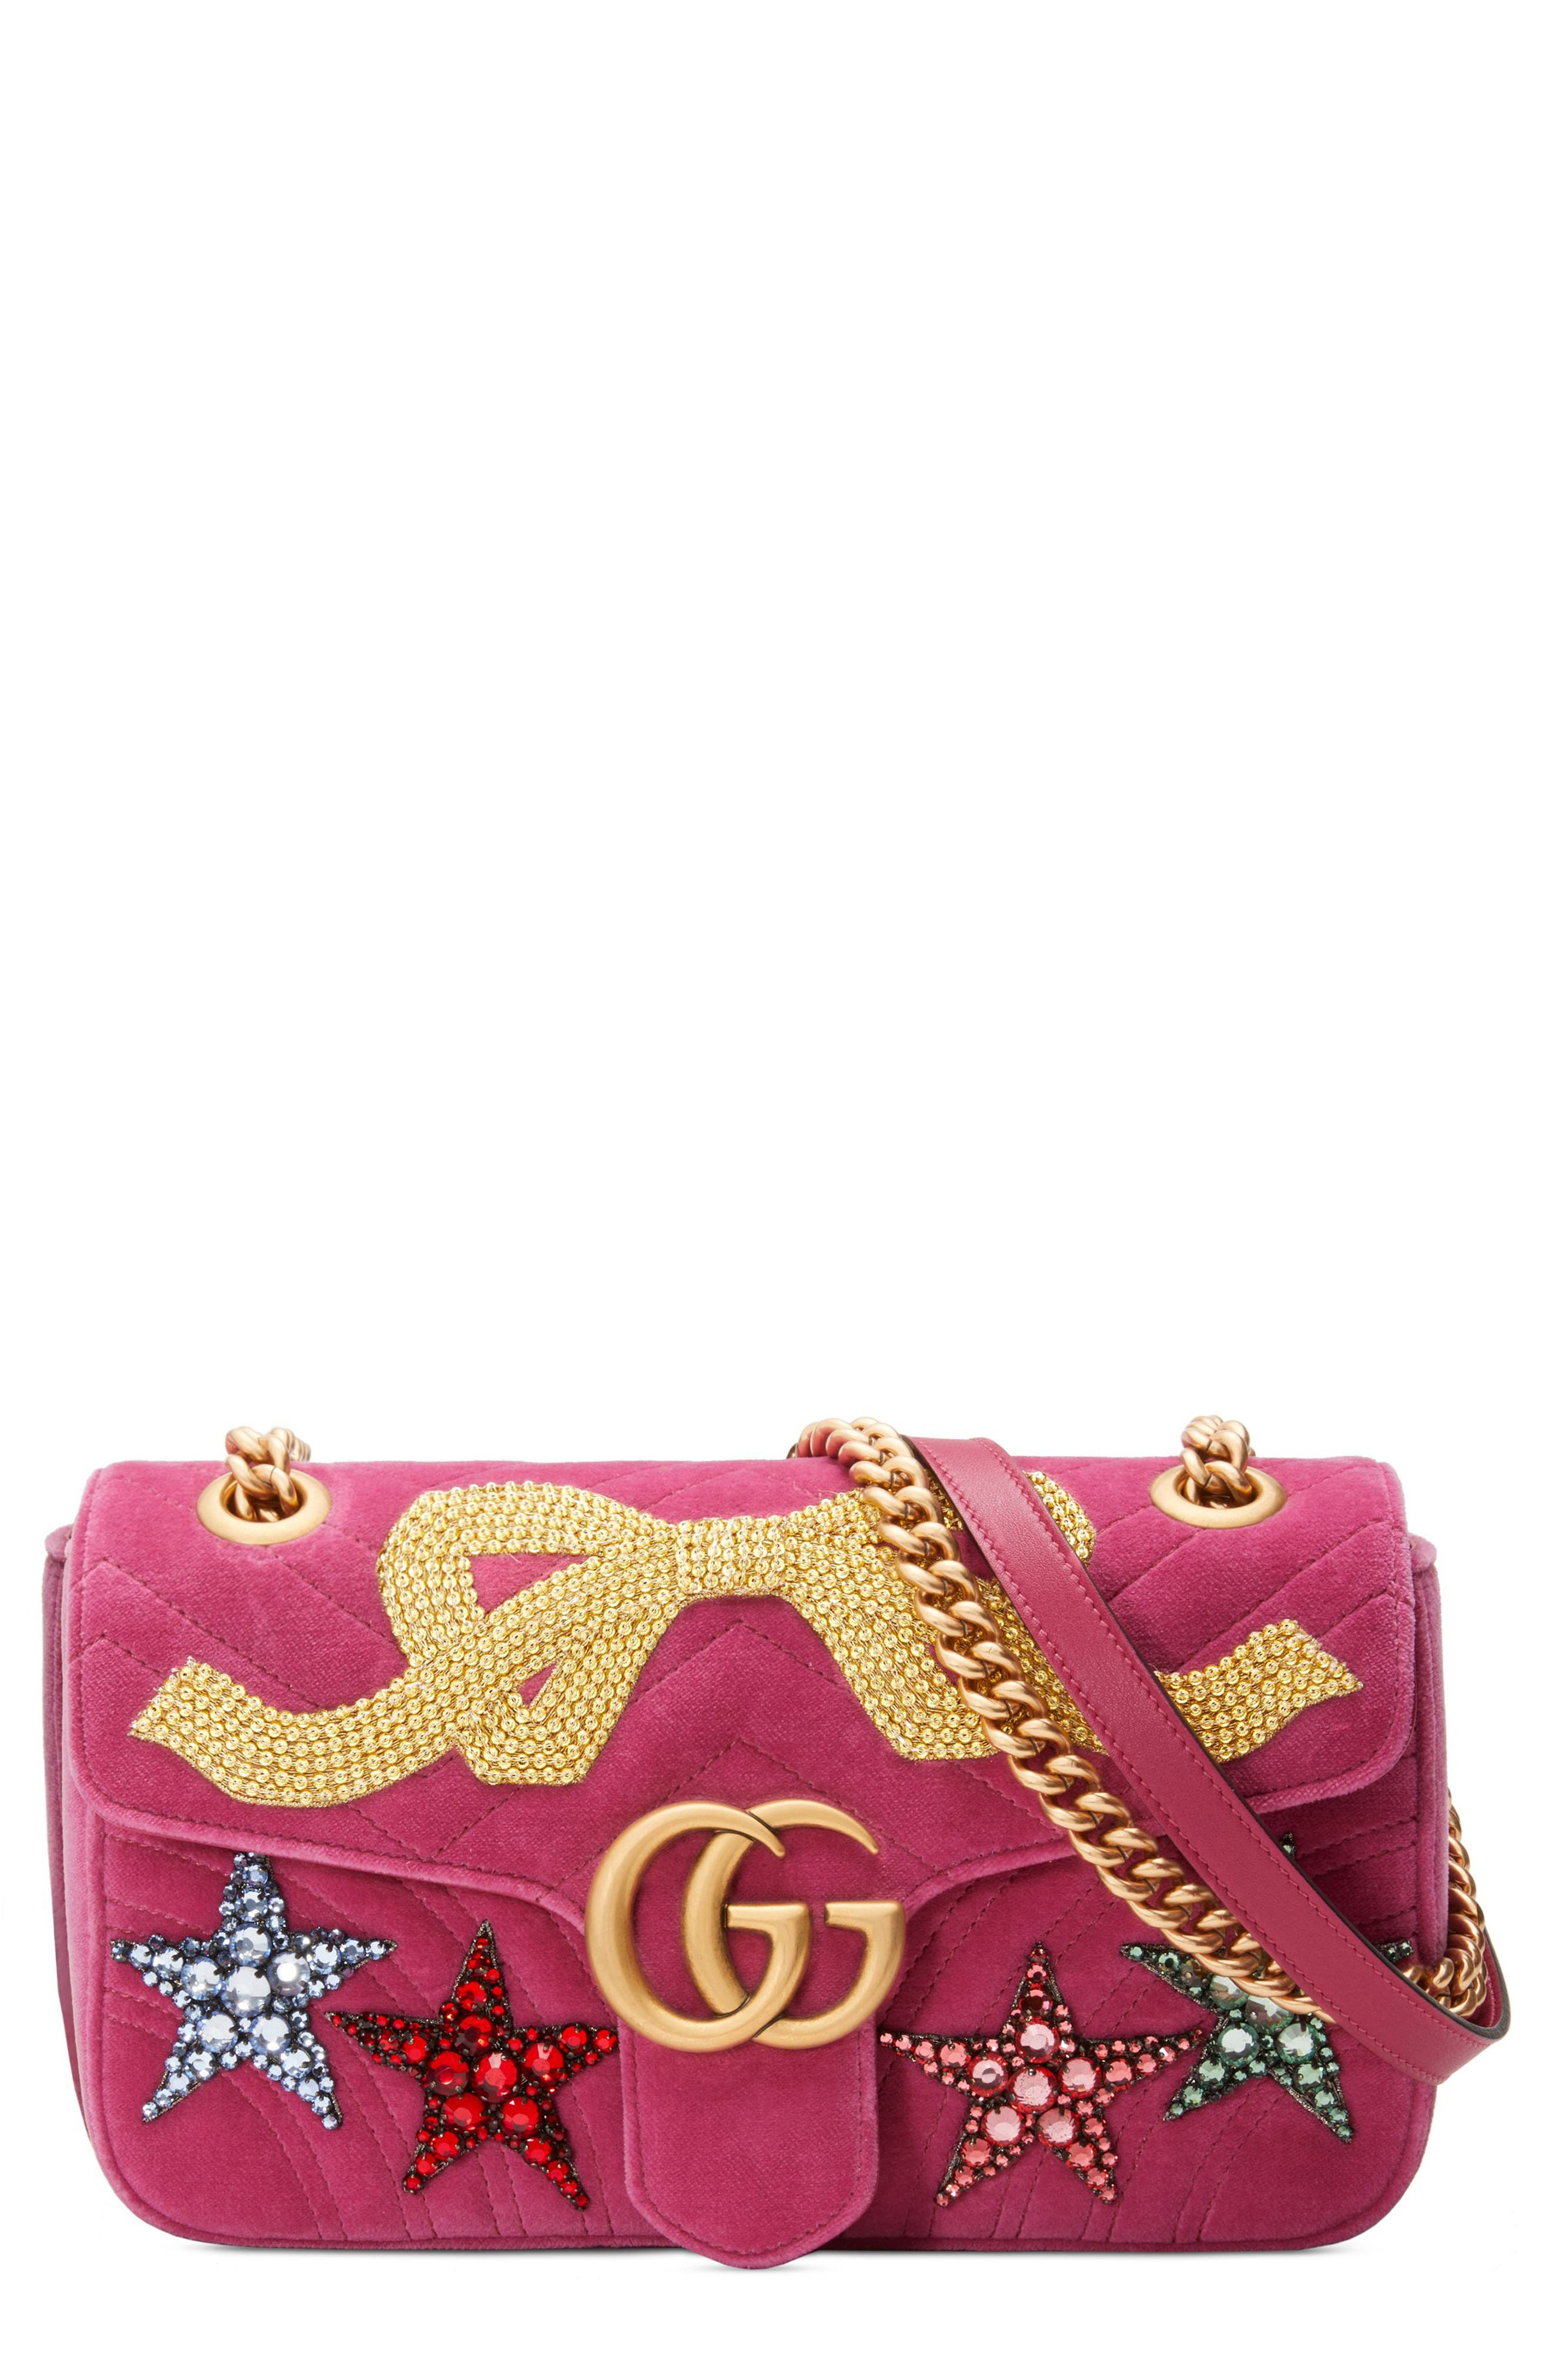 Small GG Marmont 2.0 Matelassé Velvet Shoulder Bag,                             Main thumbnail 1, color,                             RASPBERRY/ RASPBERRY MULTI